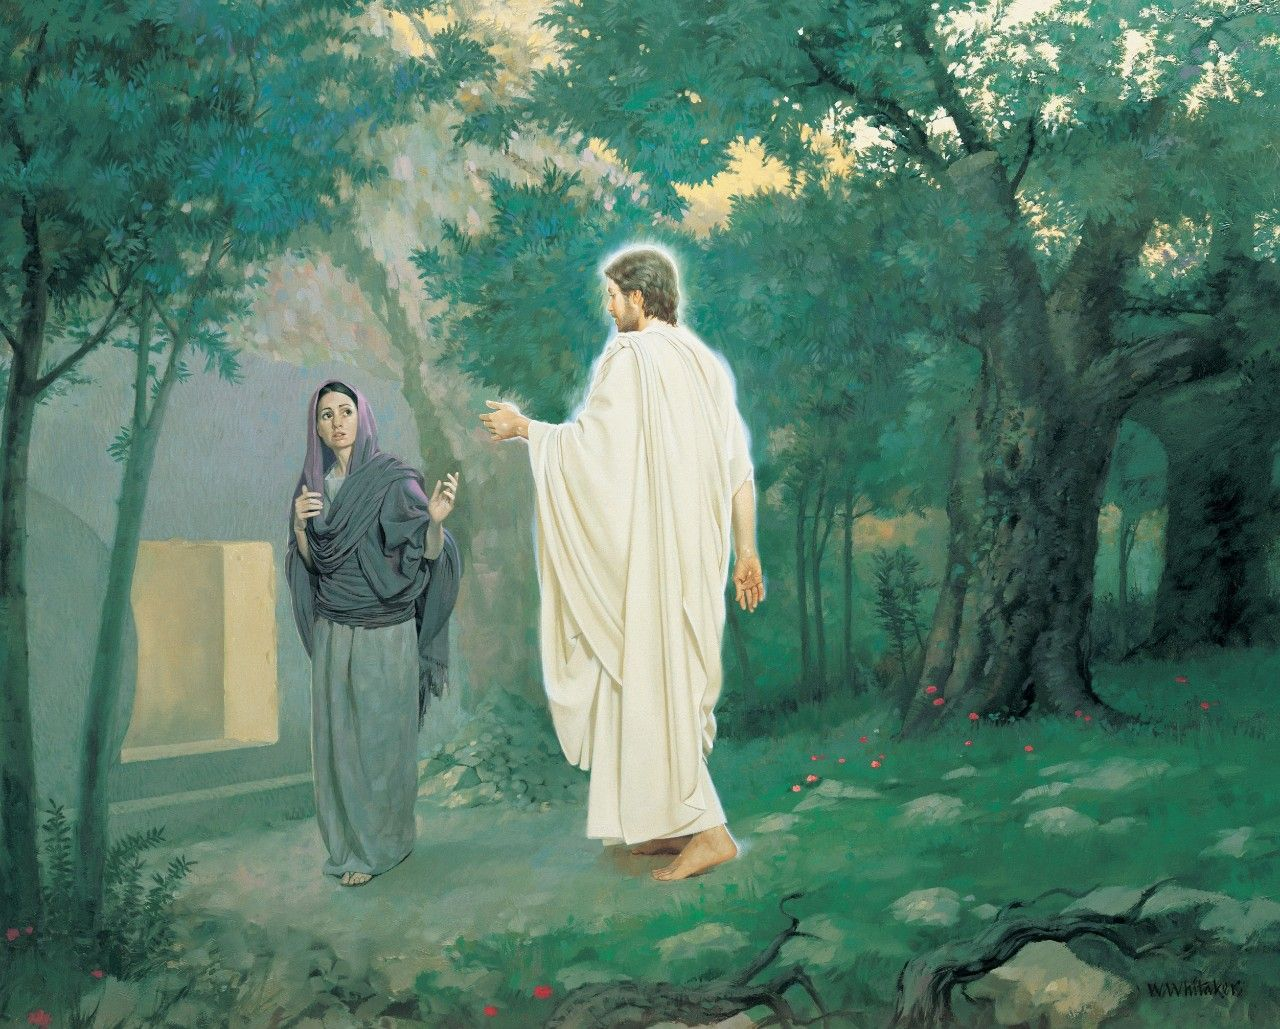 """Jesus Said to Her, """"Mary,"""" by William Whitaker"""